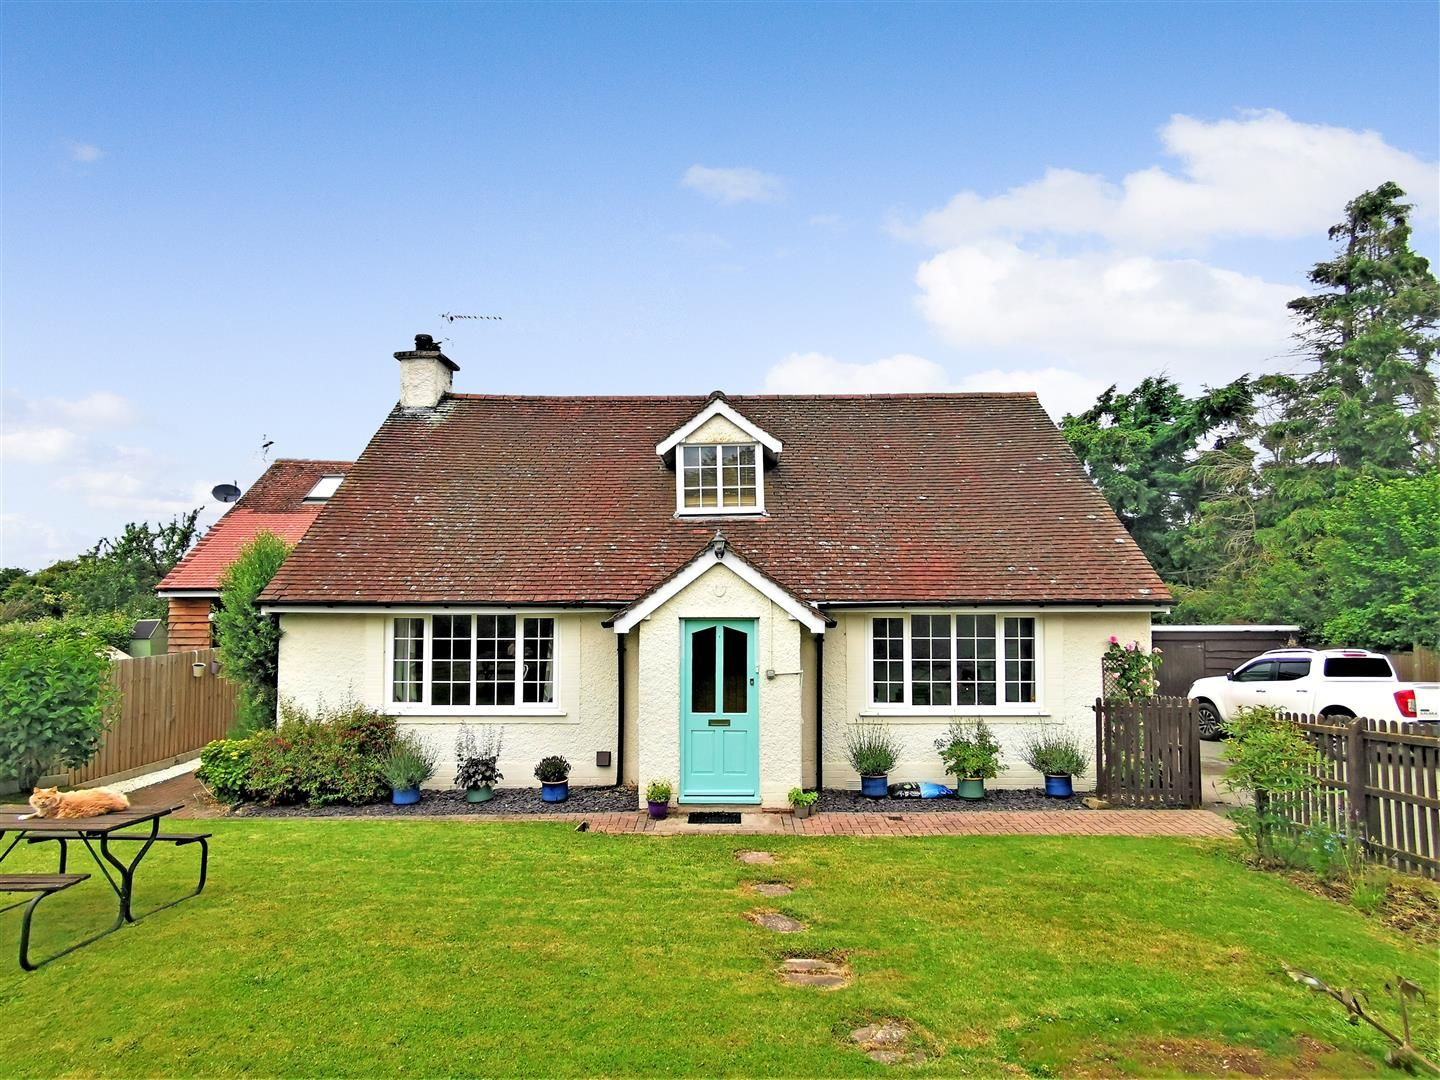 5 bed semi-detached for sale in Bartestree, HR1